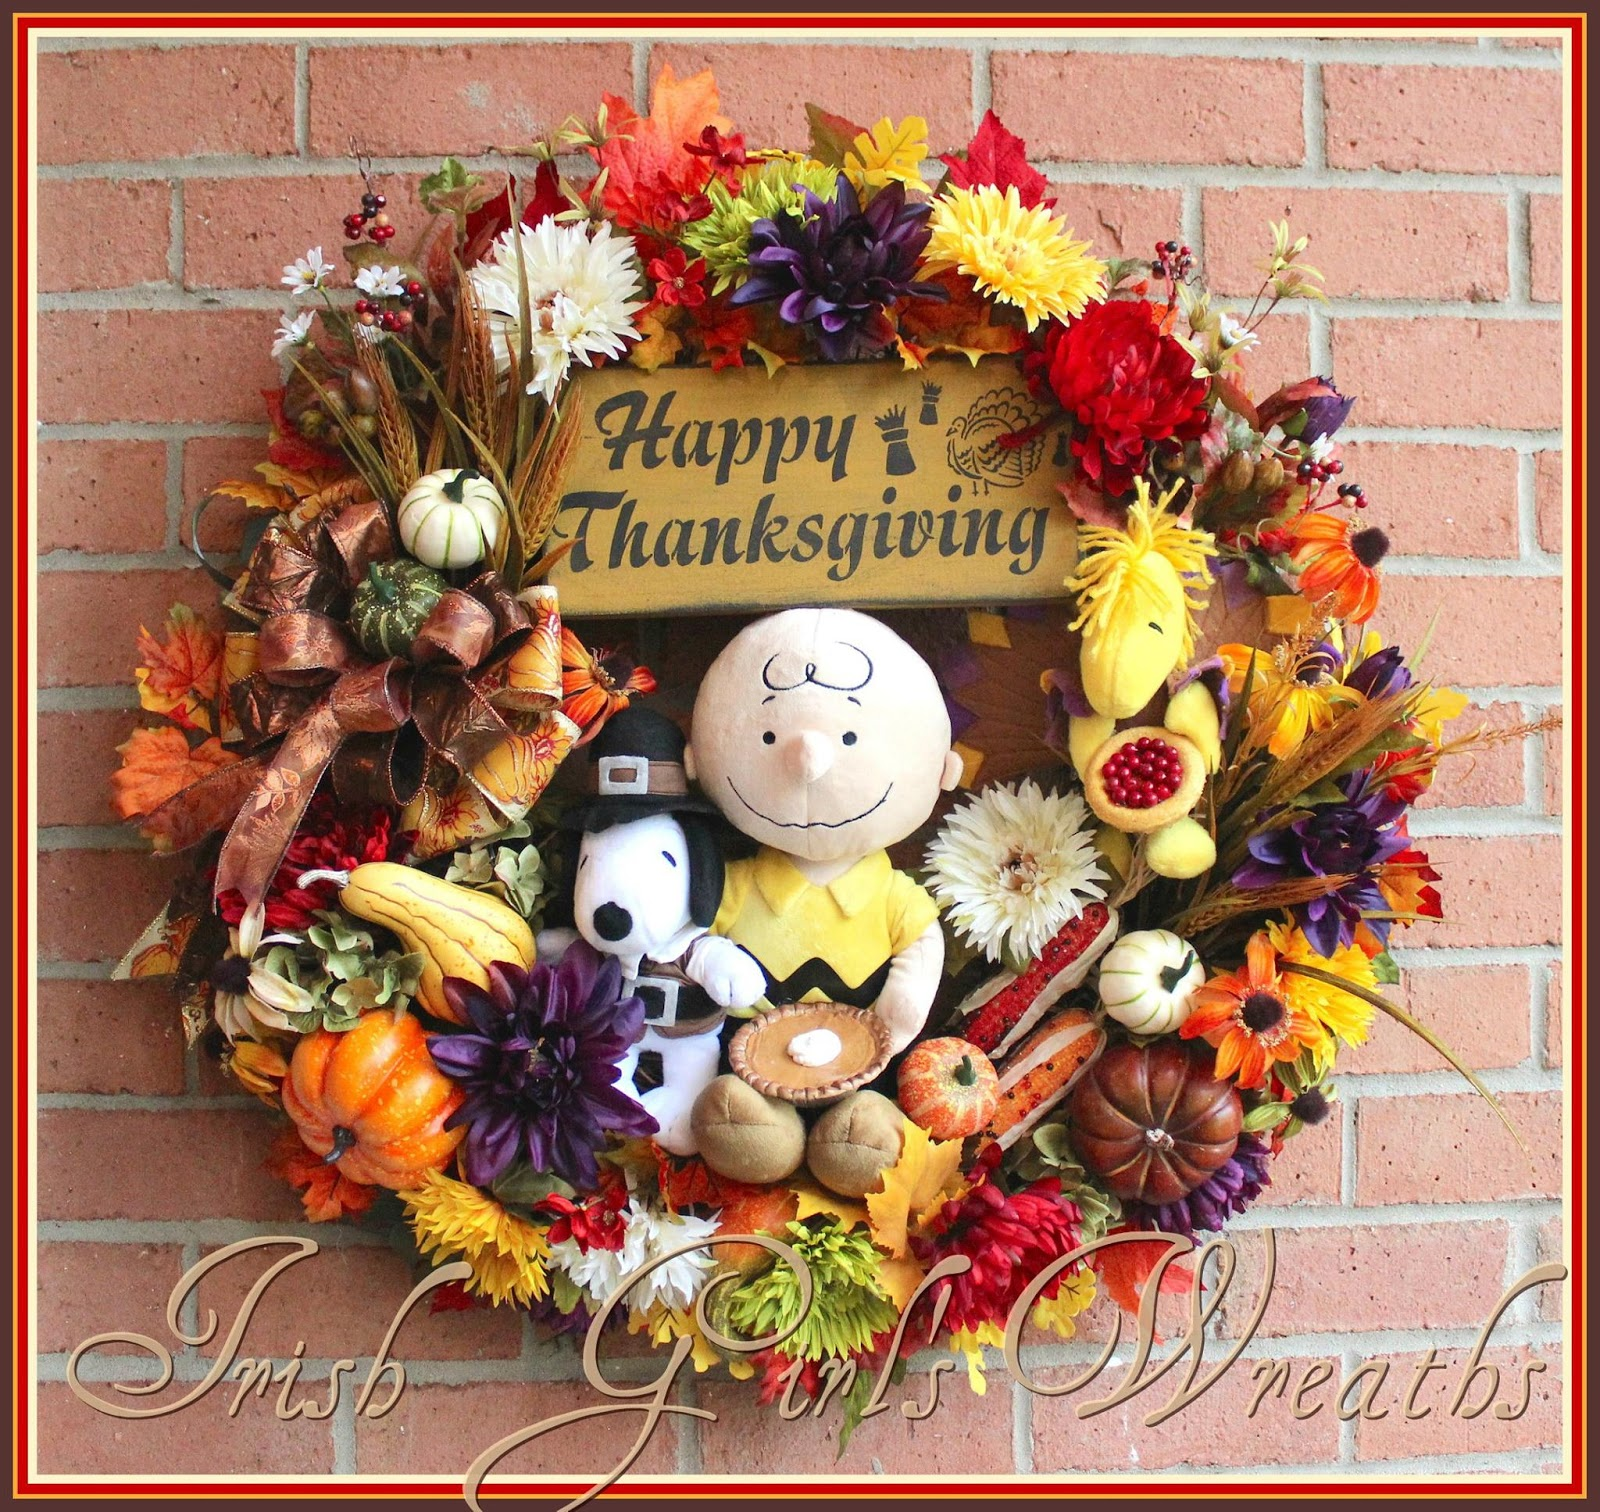 It's Thanksgiving Charlie Brown Wreath, Peanuts, Snoopy, Woodstock